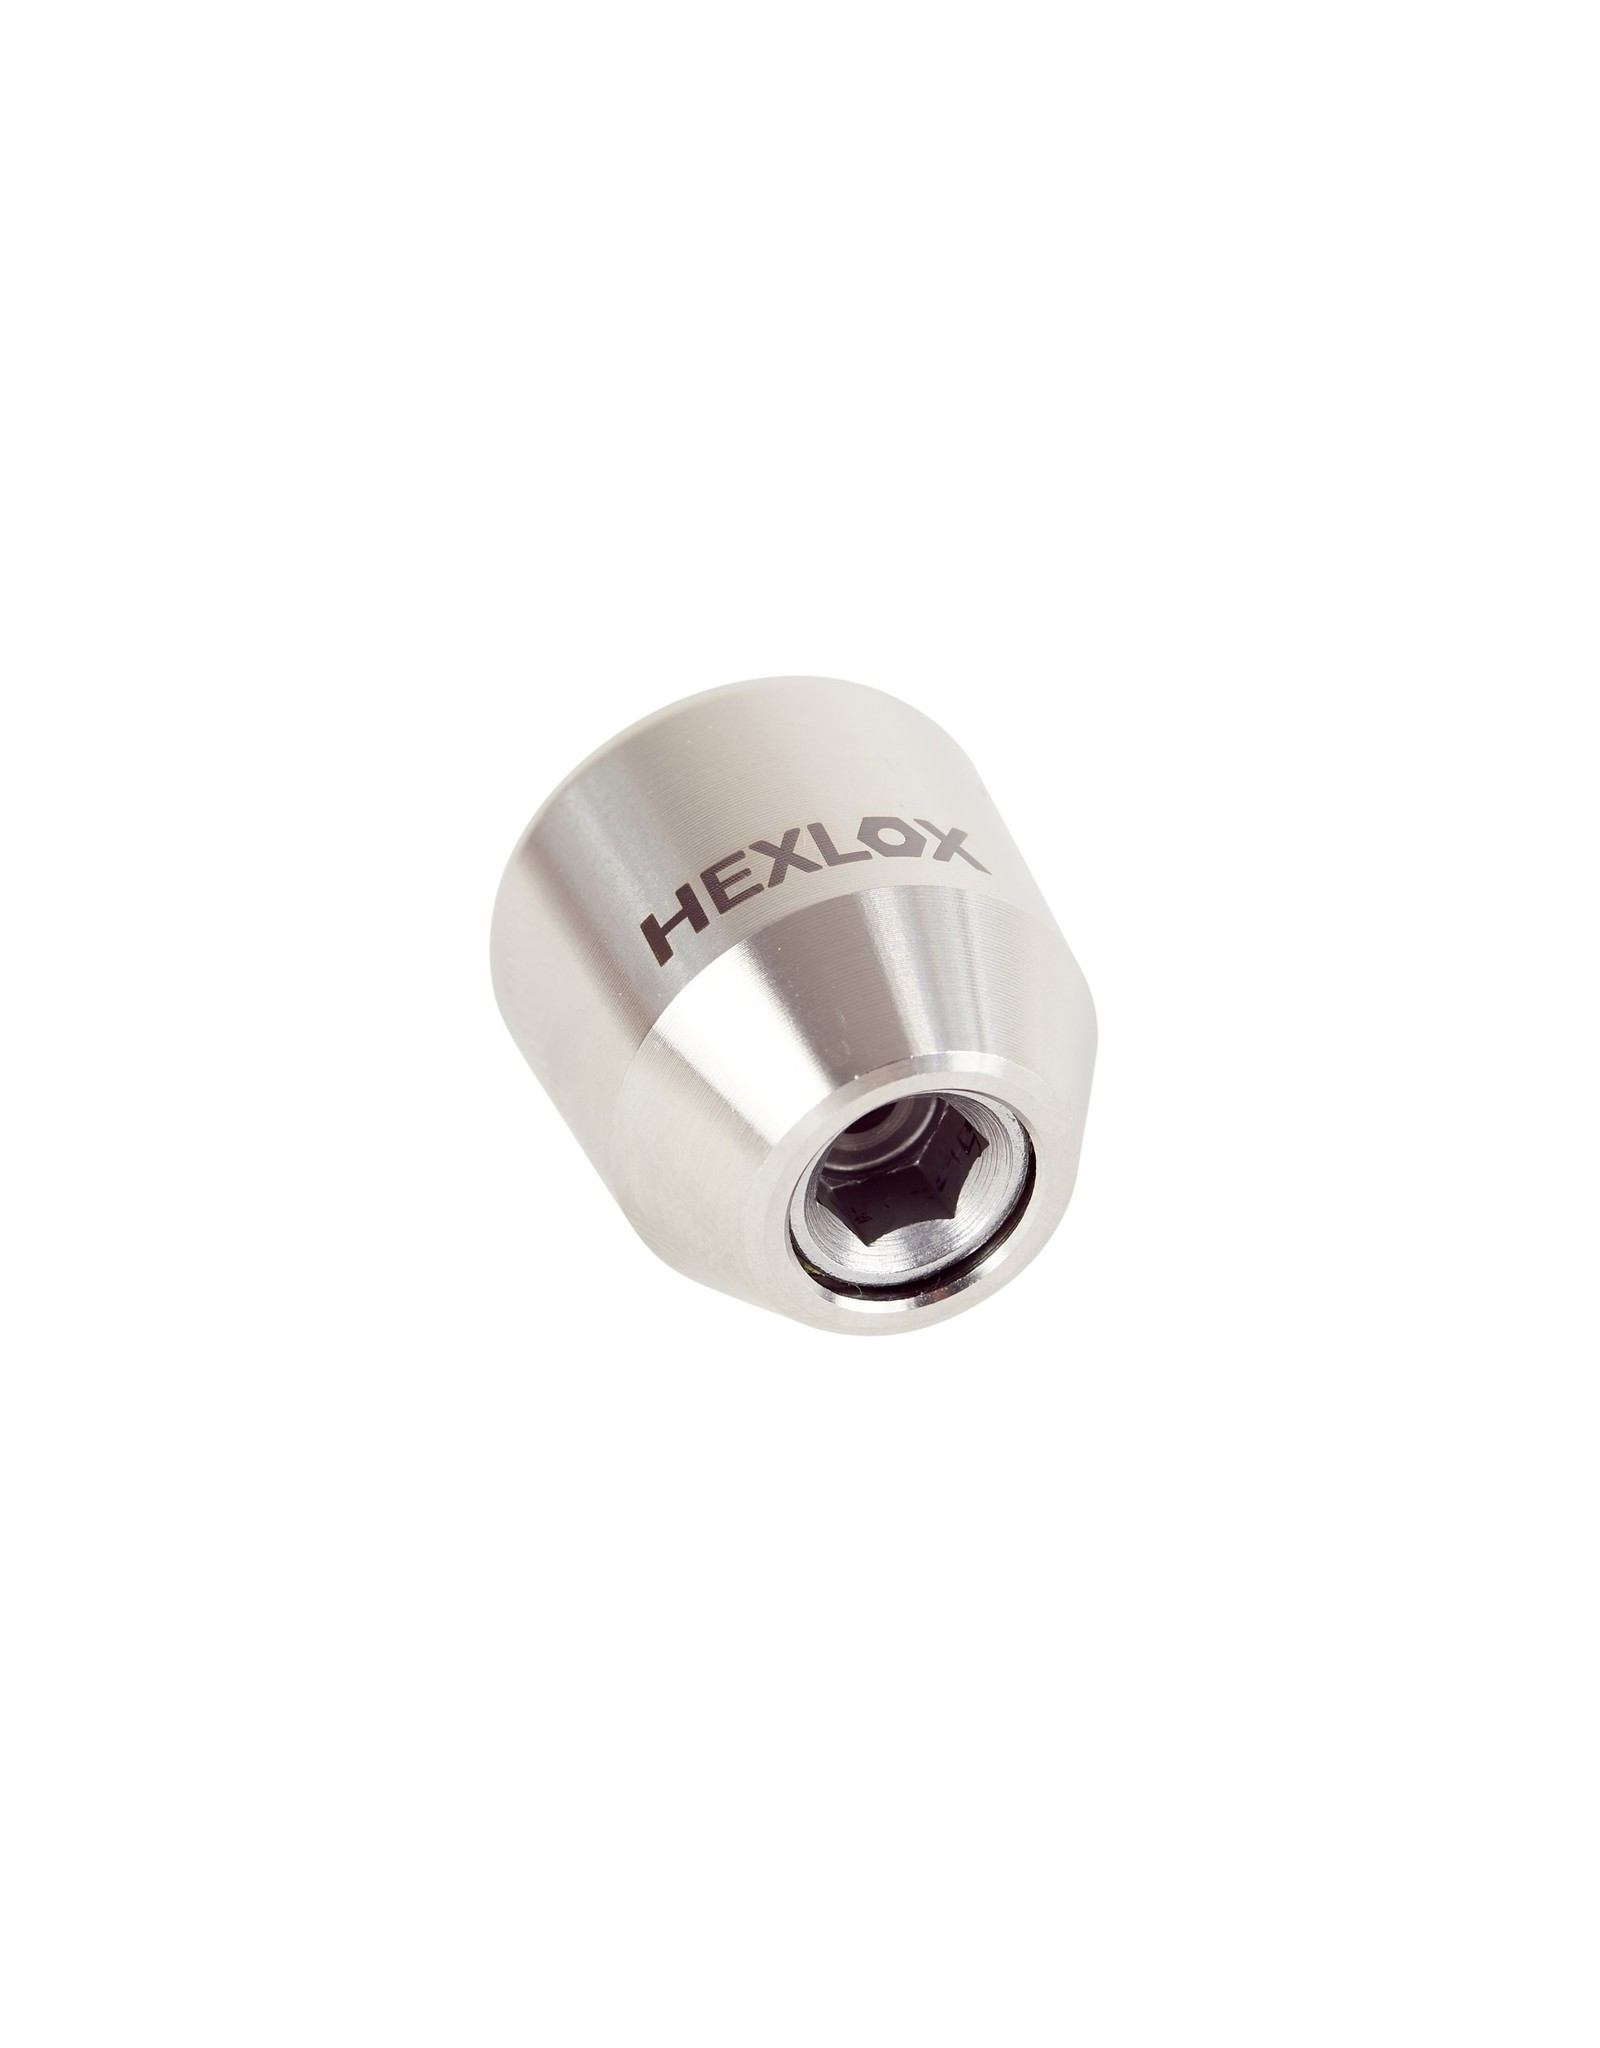 Hexlox M10 Wheel Nut Lock Single